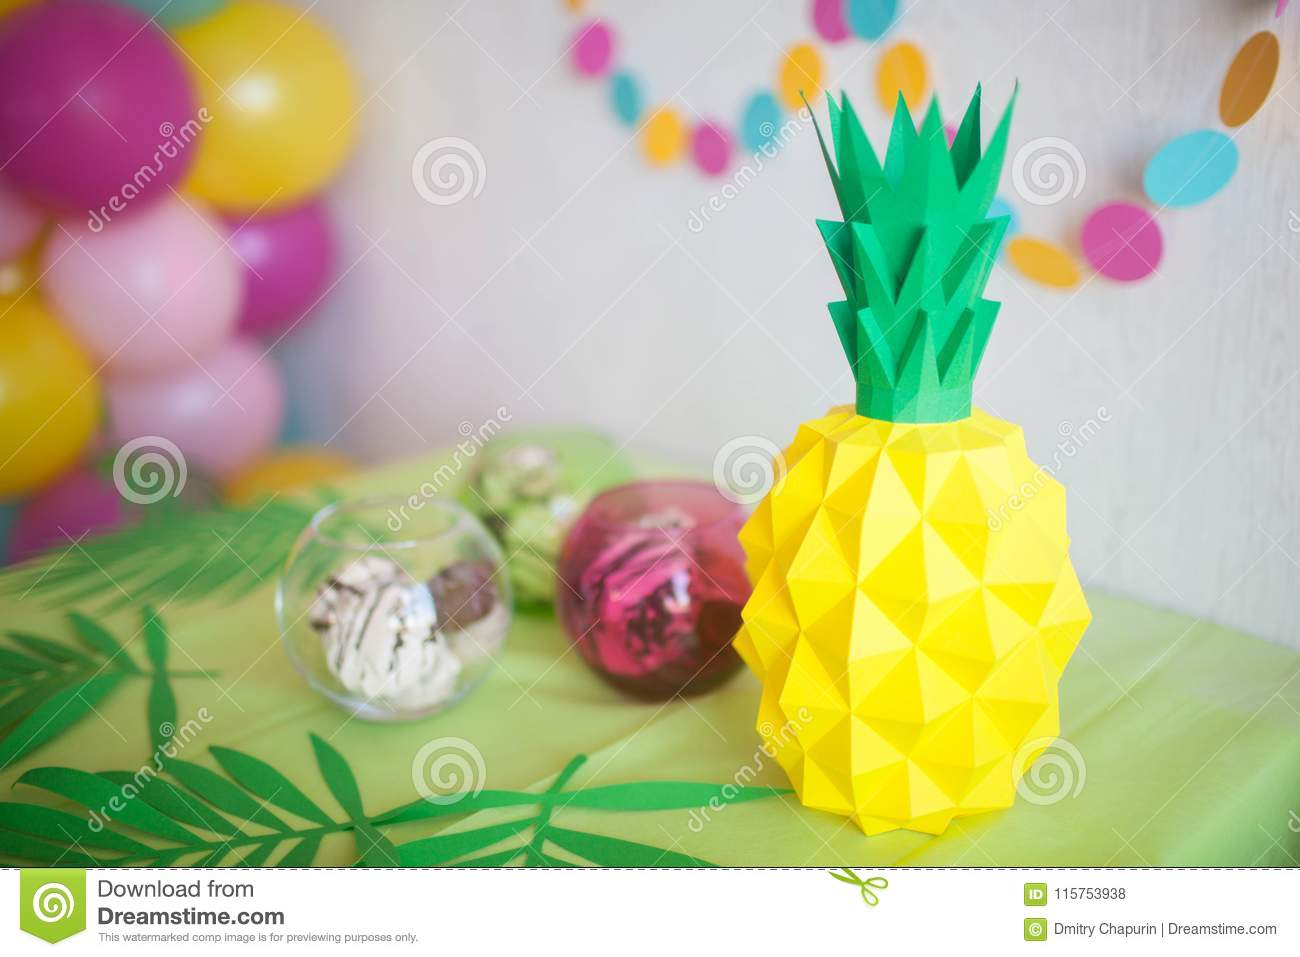 Origami Pineapple From Colored Paper Stock Photo Image Of Boss